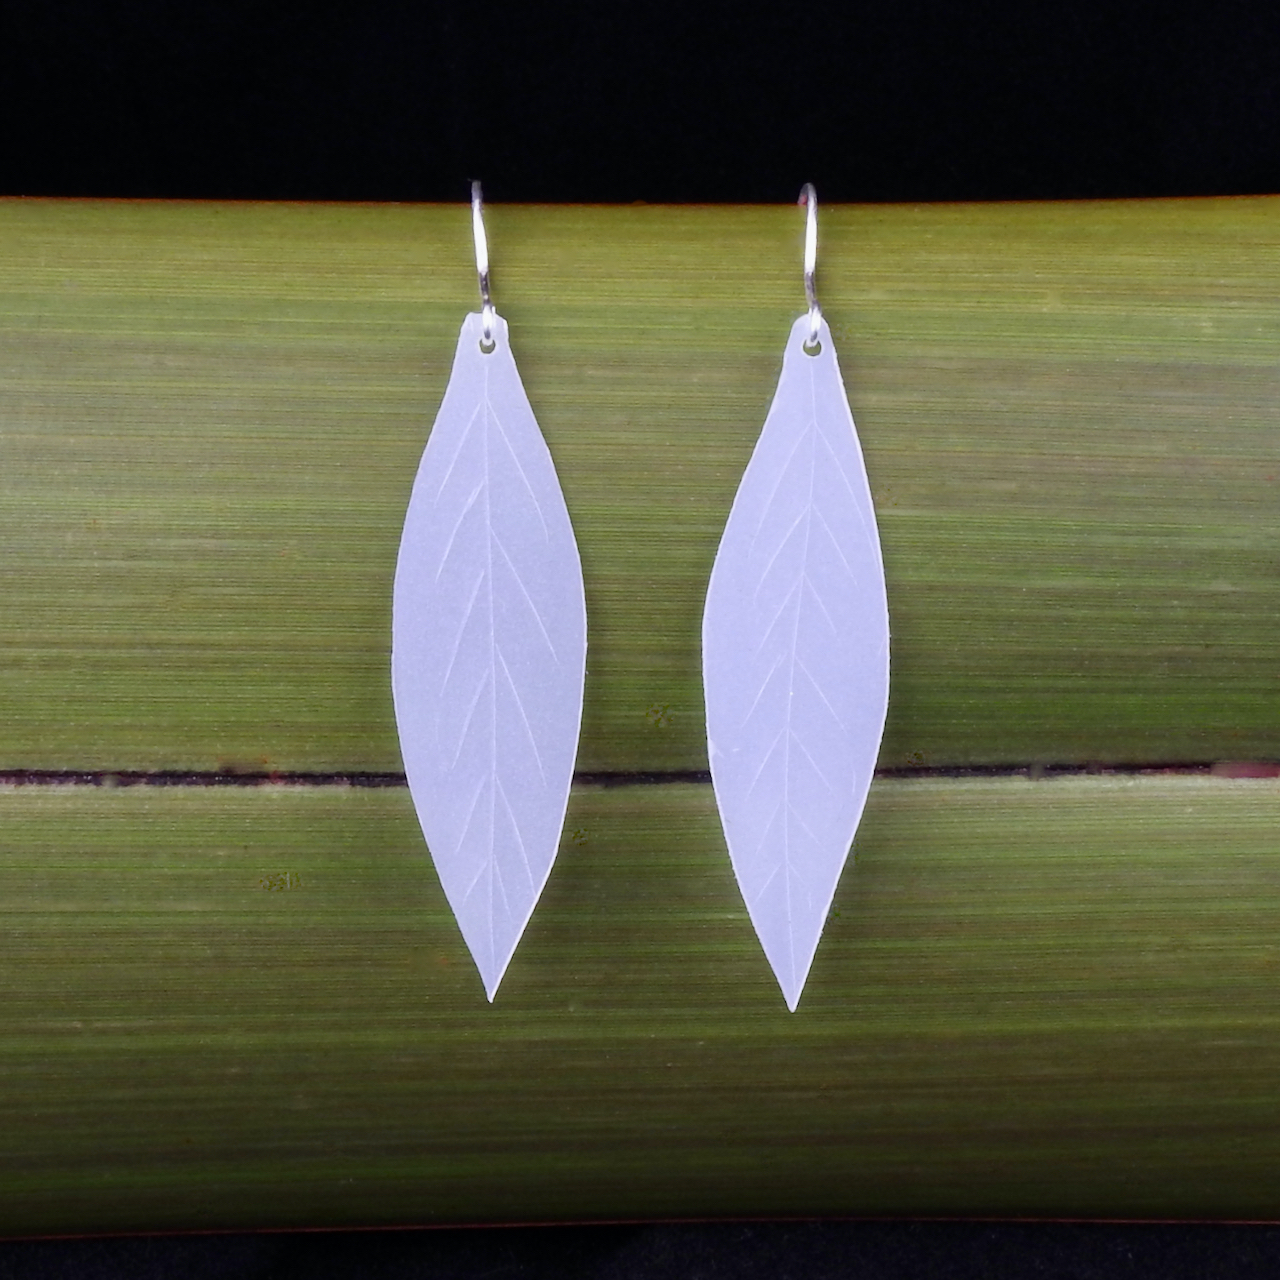 Leaf dangly earrings made from recycled milk bottles